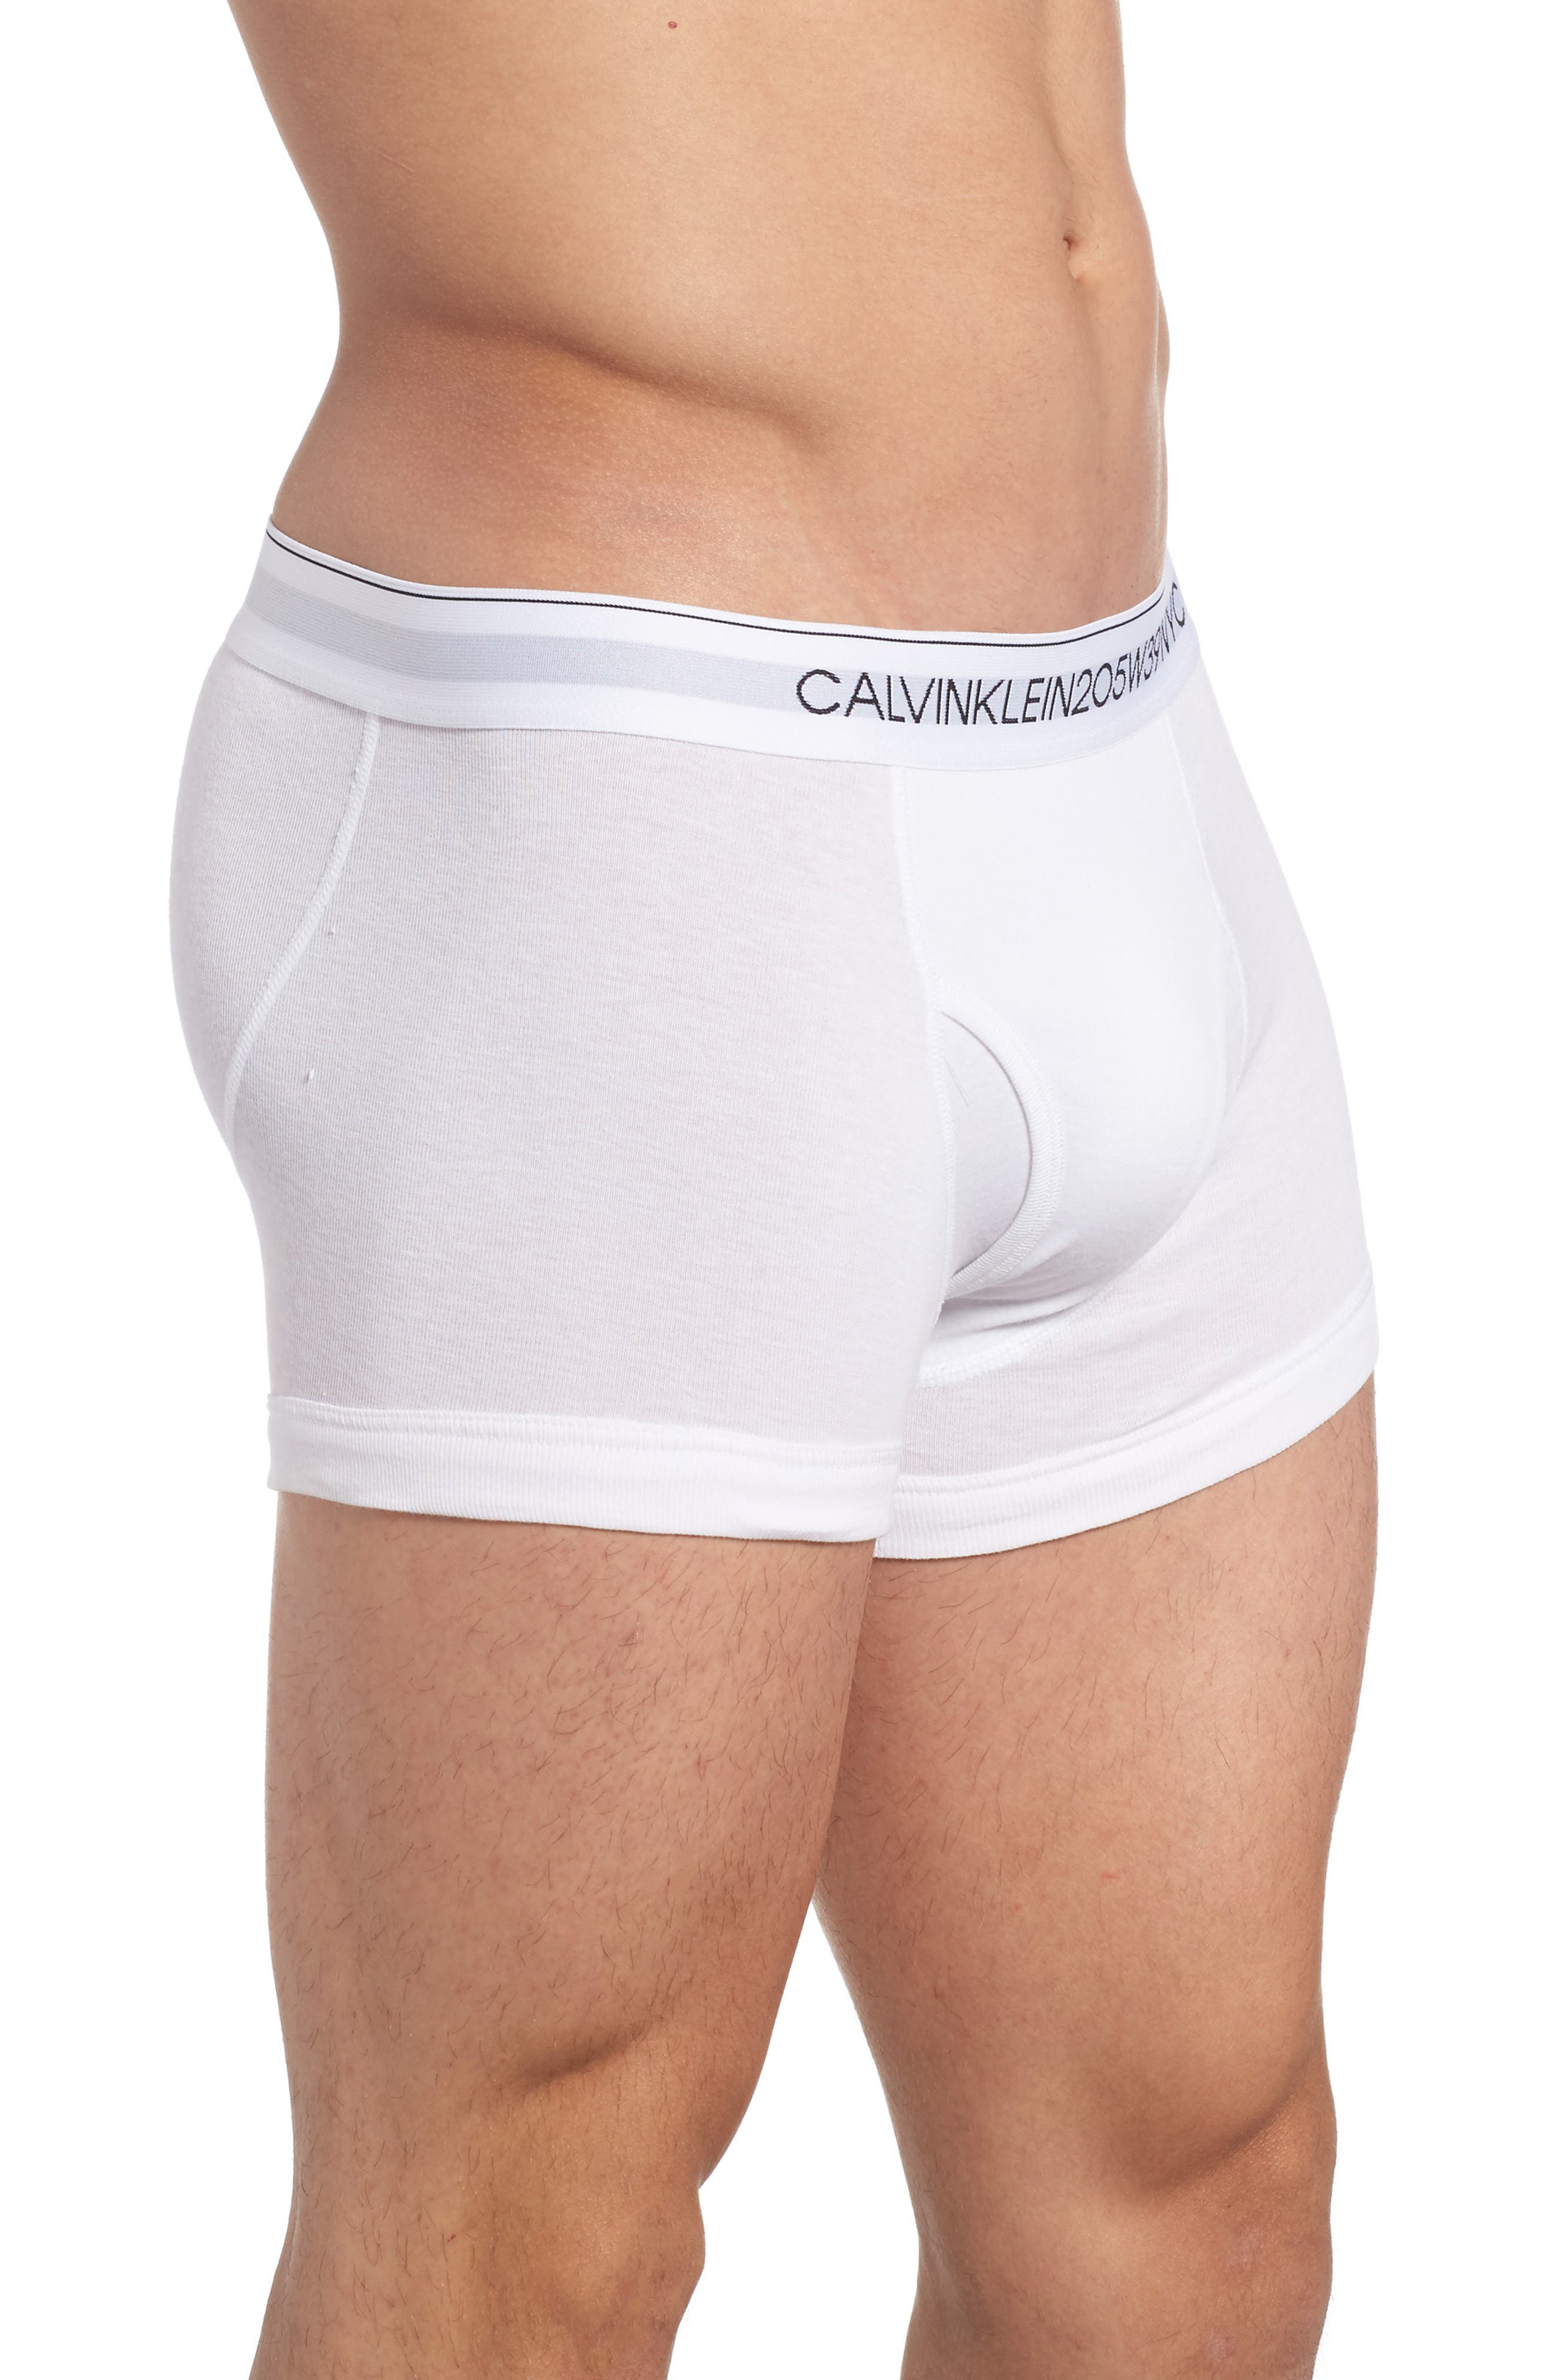 Alternate Image 2  - Calvin Klein 205W39NYC Collection Cotton Trunks